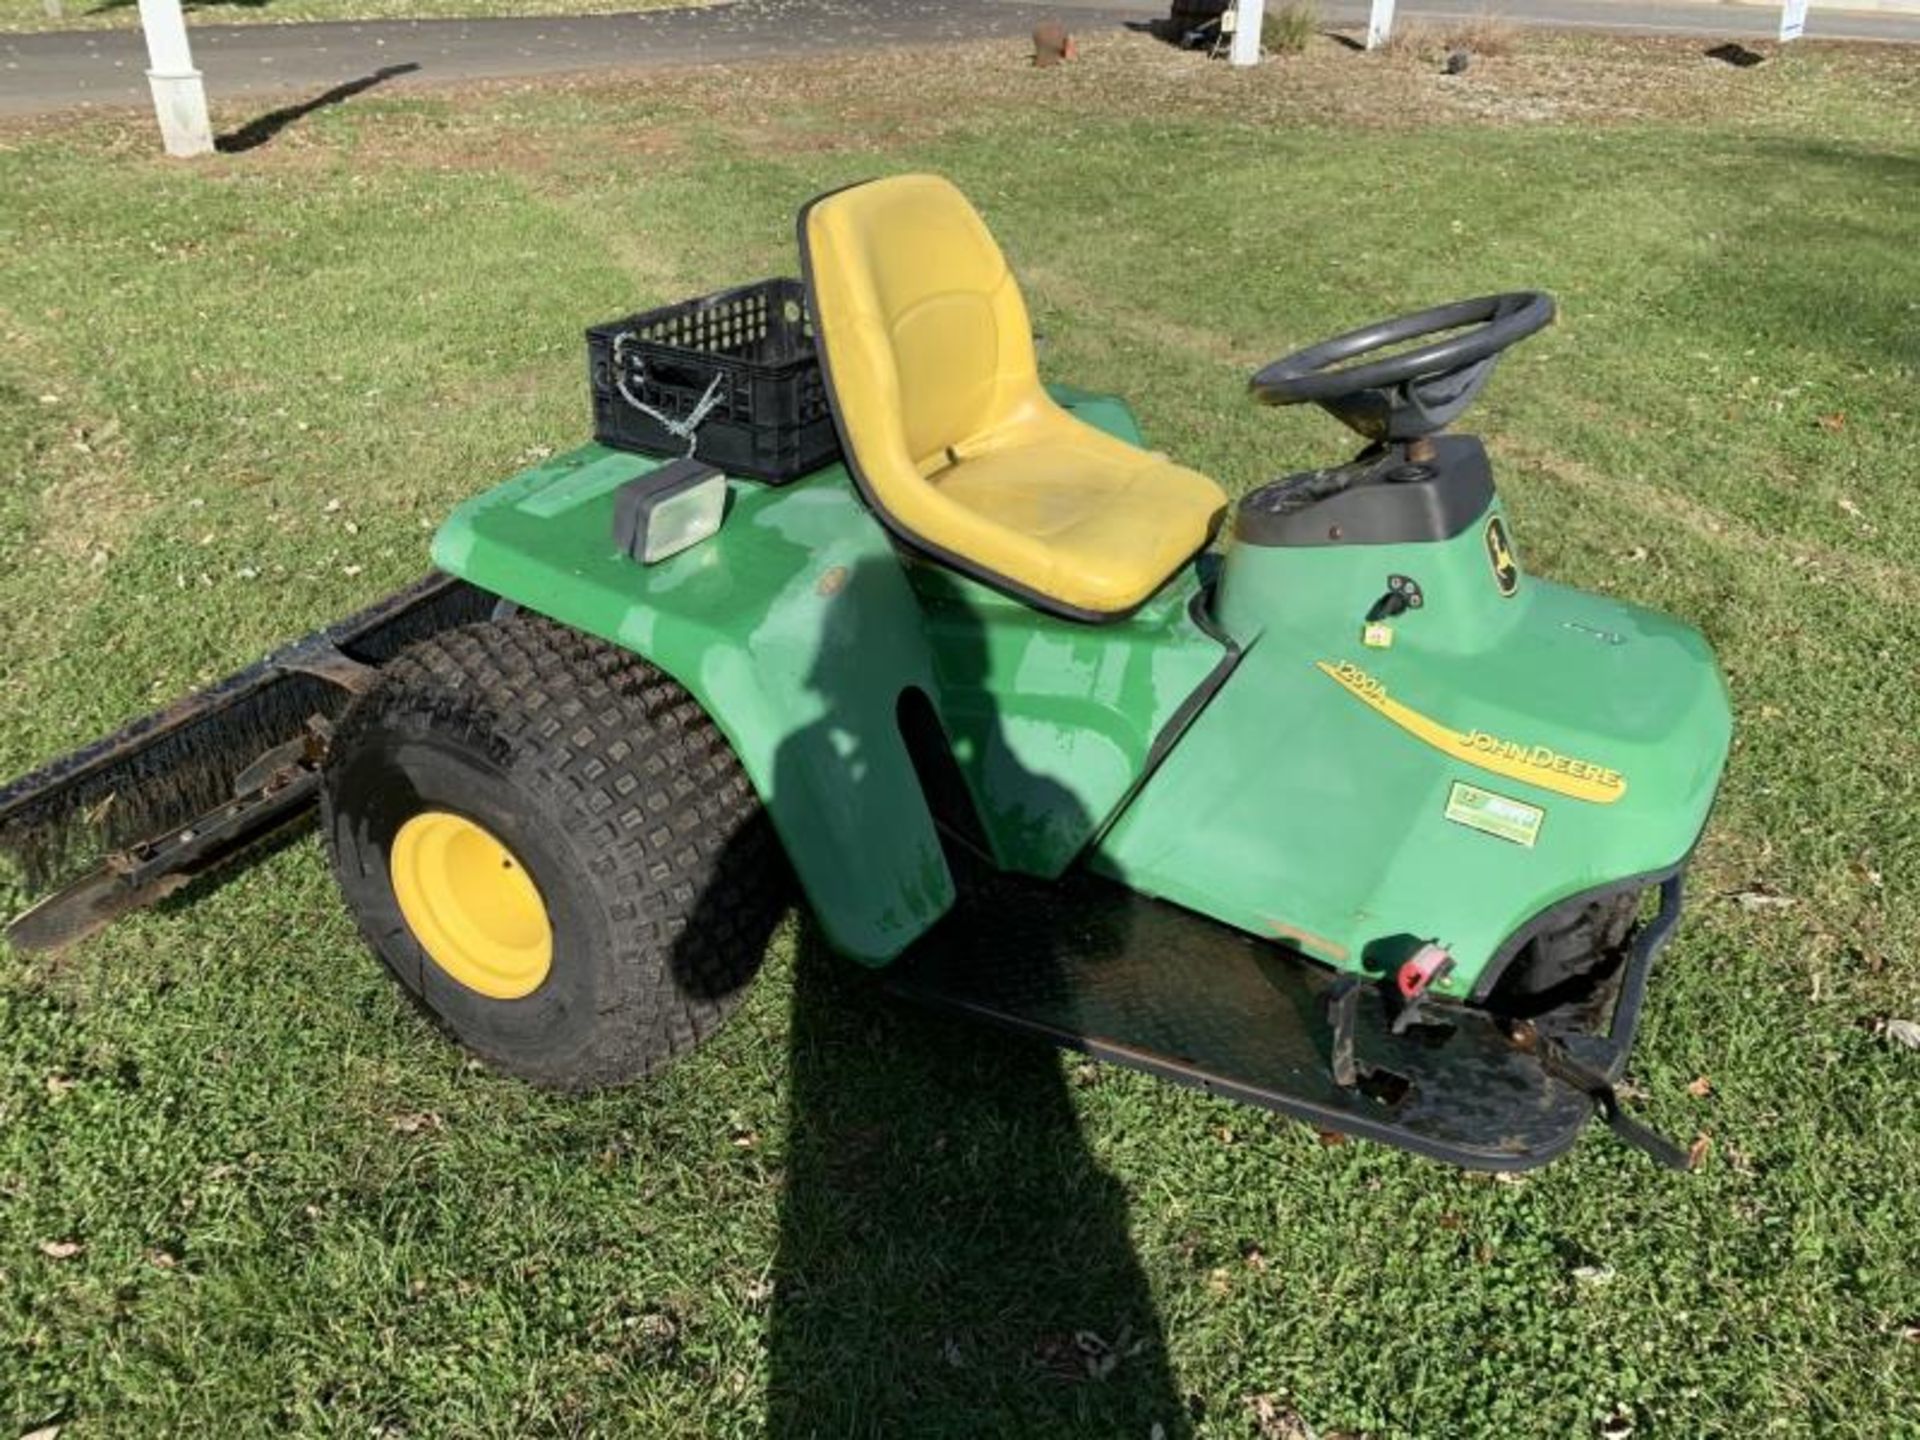 2016 Bunker Rake, John Deere 1200A , SN: 1TC1200AEGT230522 - Starts & Runs, Shifts Rough - Image 3 of 5